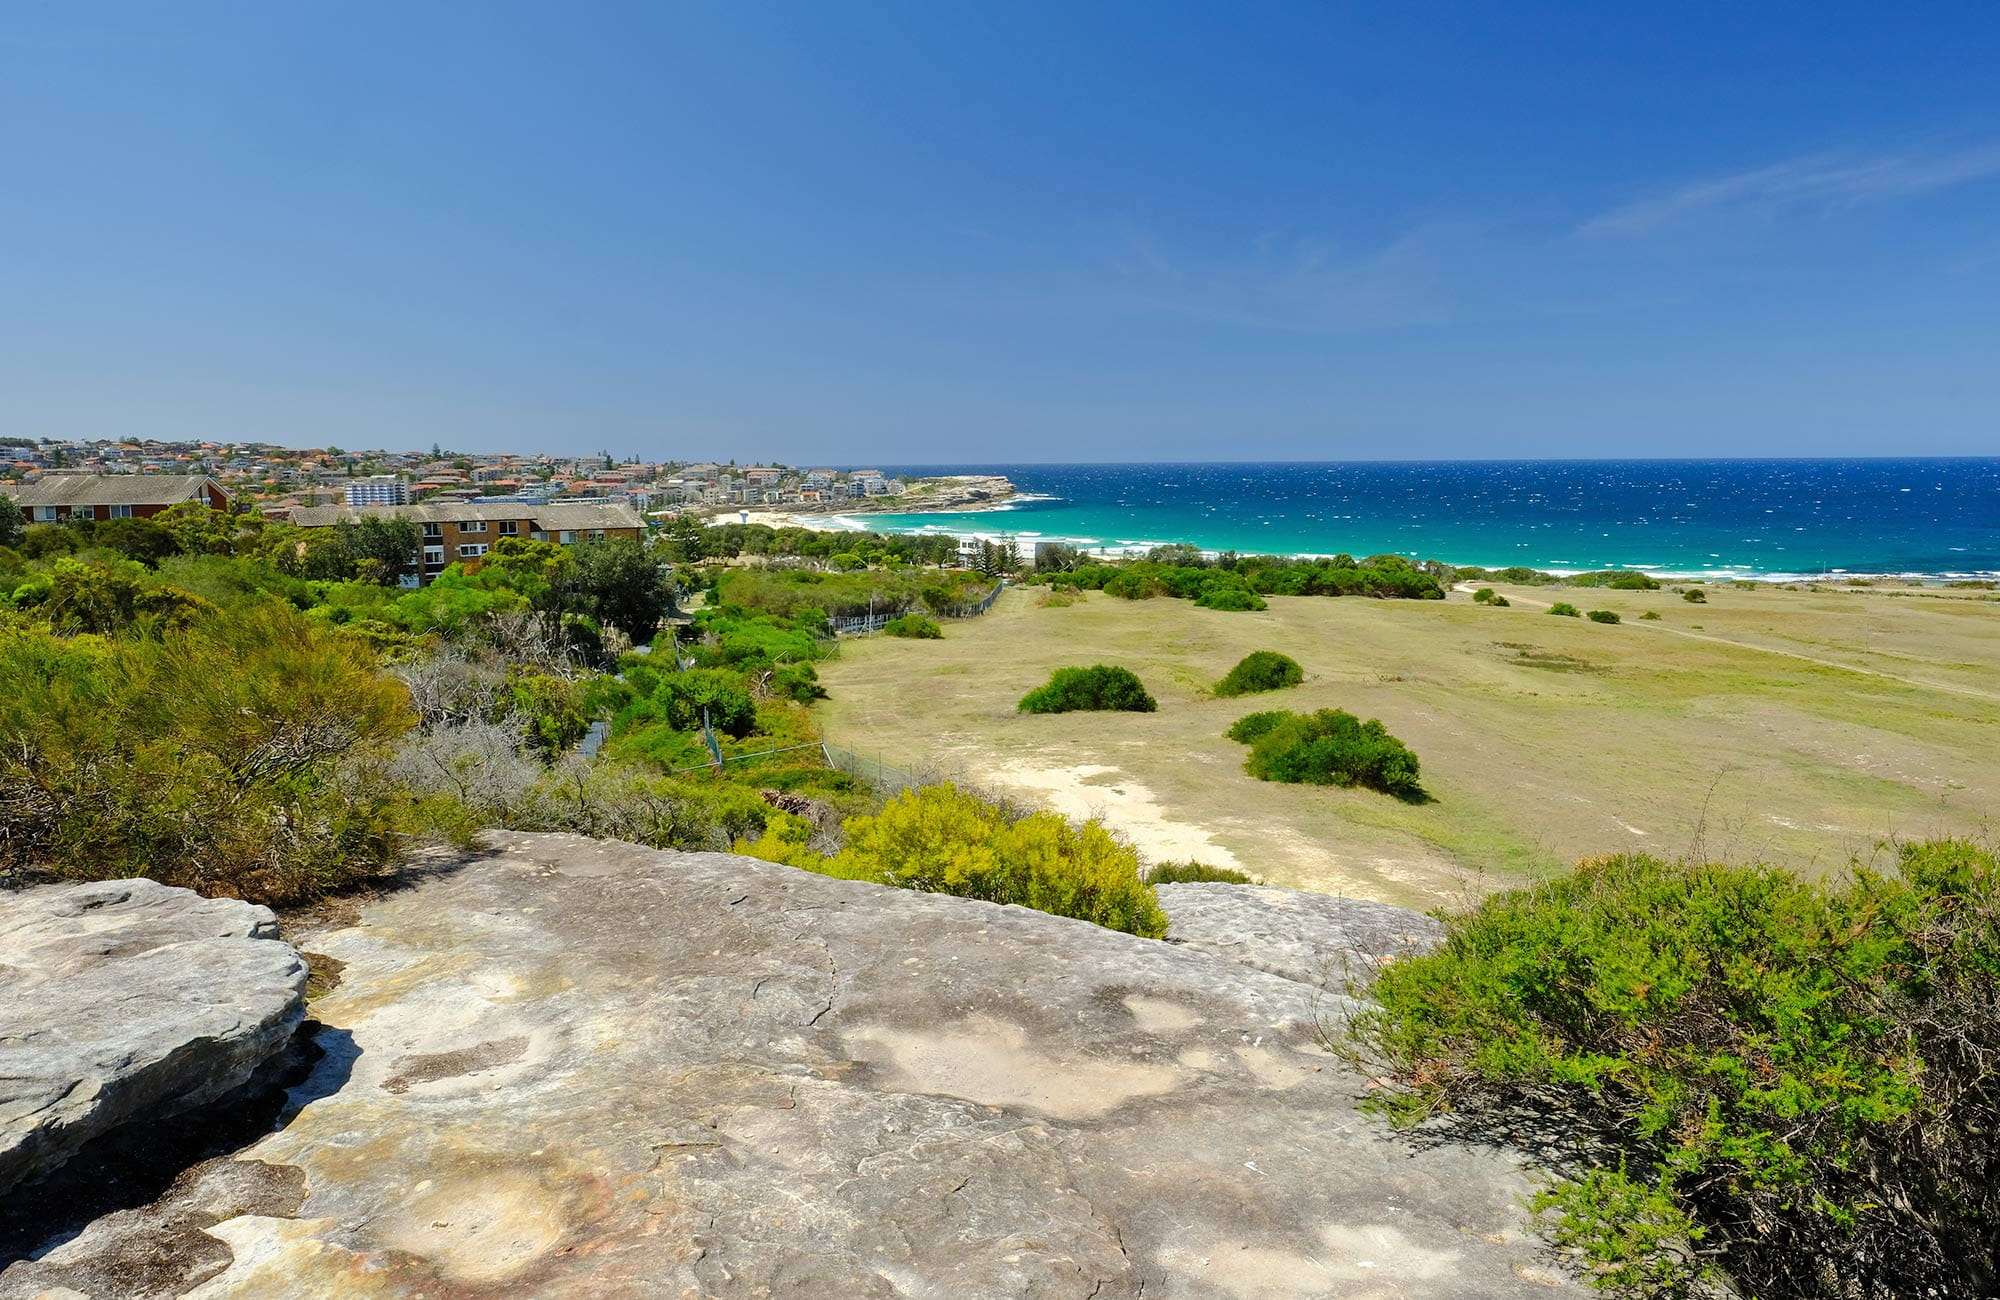 View to Maroubra Beach from Western Escarpment walking track. Photo: E Sheargold/OEH